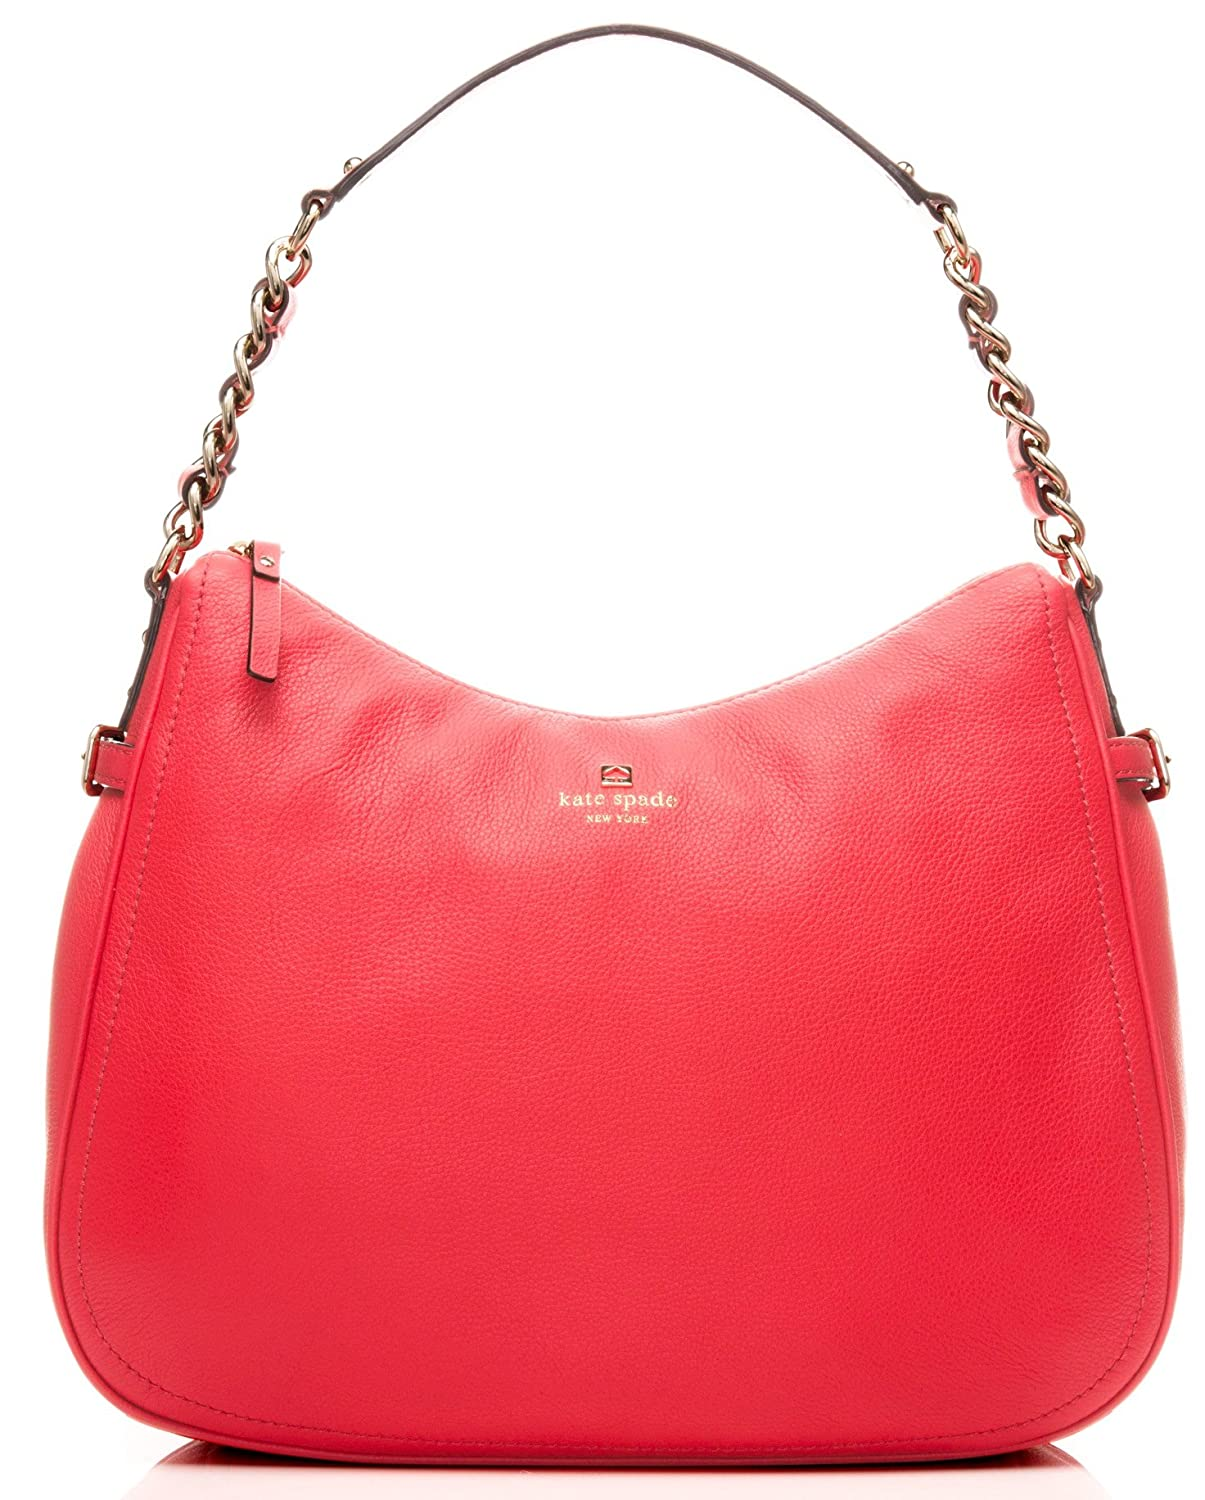 Kate Spade New York Pine Street Finley Geranium Leather Shoulder Bag